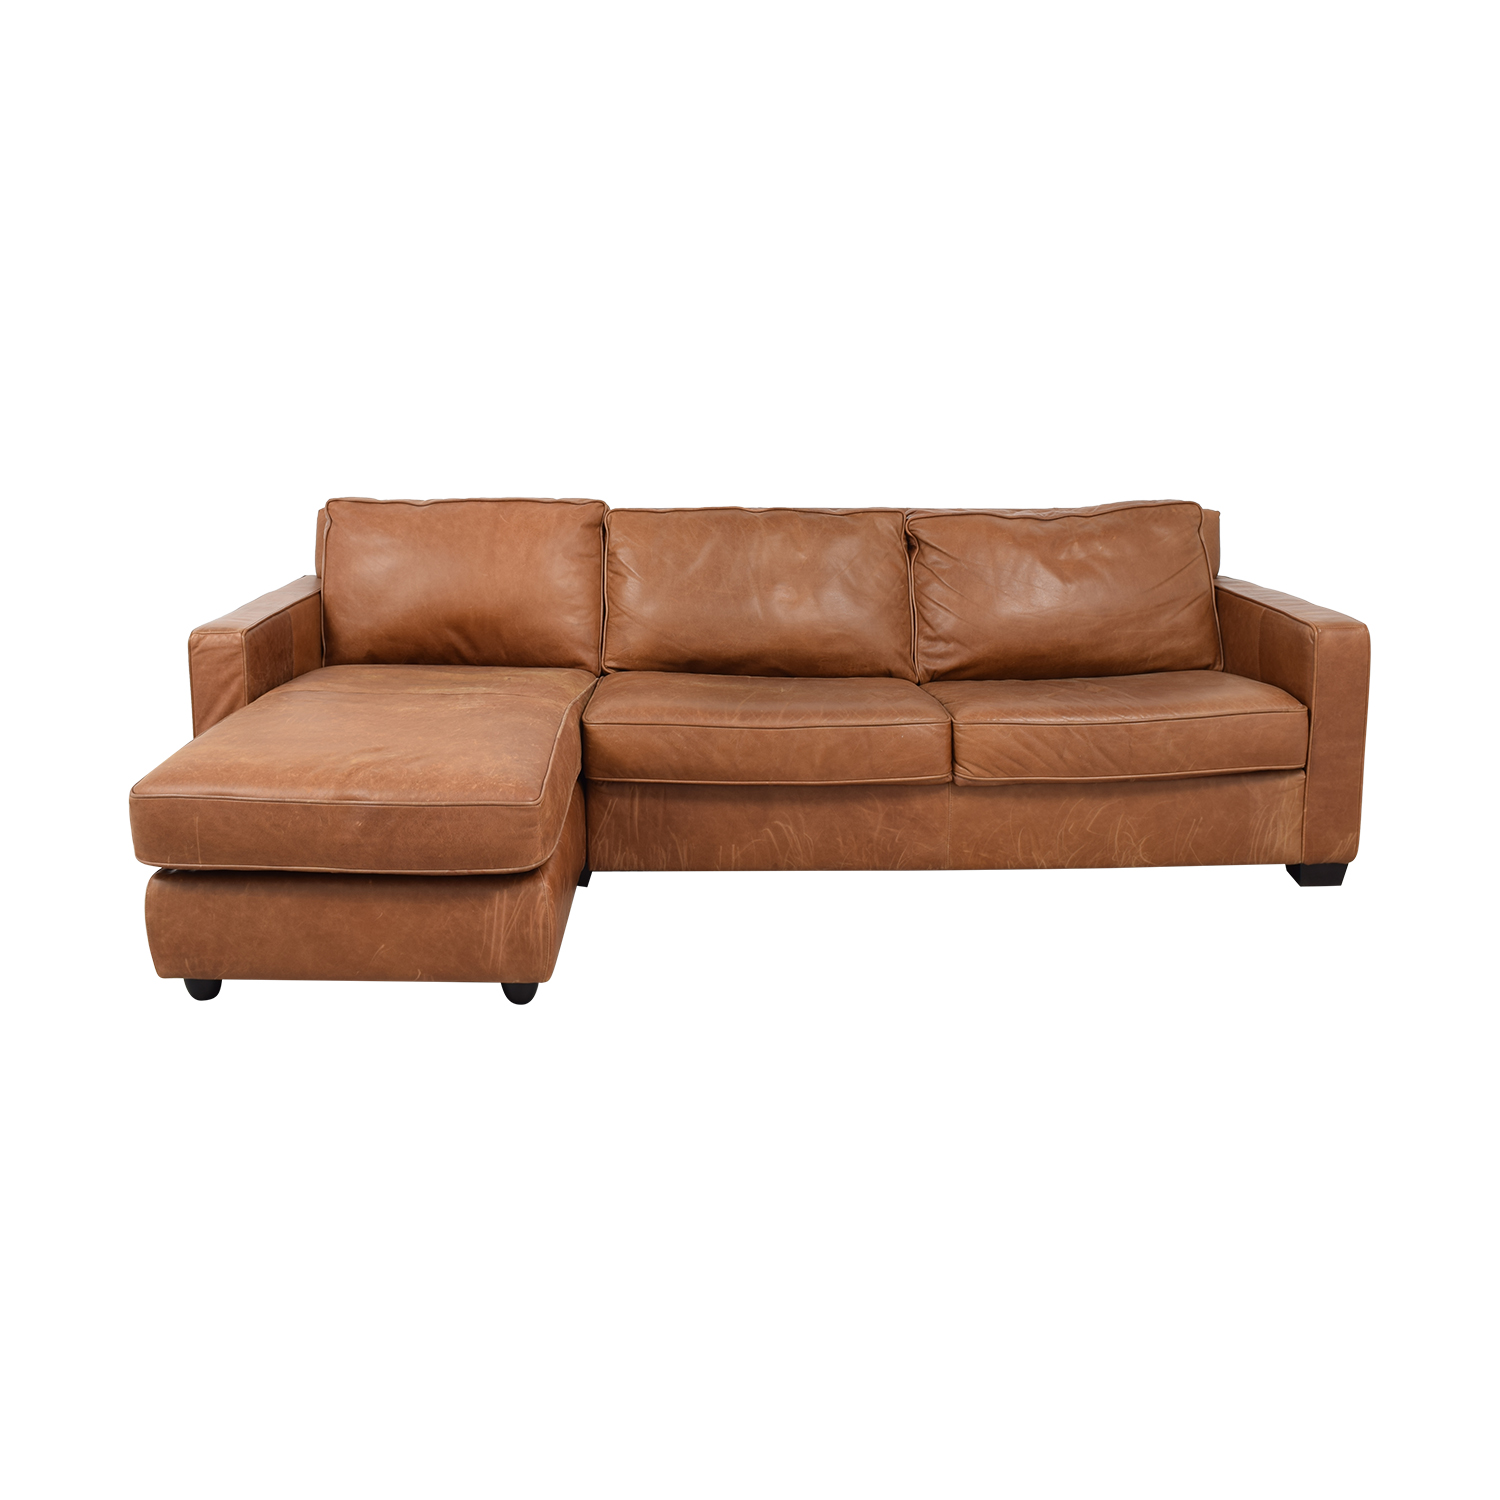 56% OFF - West Elm West Elm Henry Leather Full Sleeper Sectional Storage /  Sofas